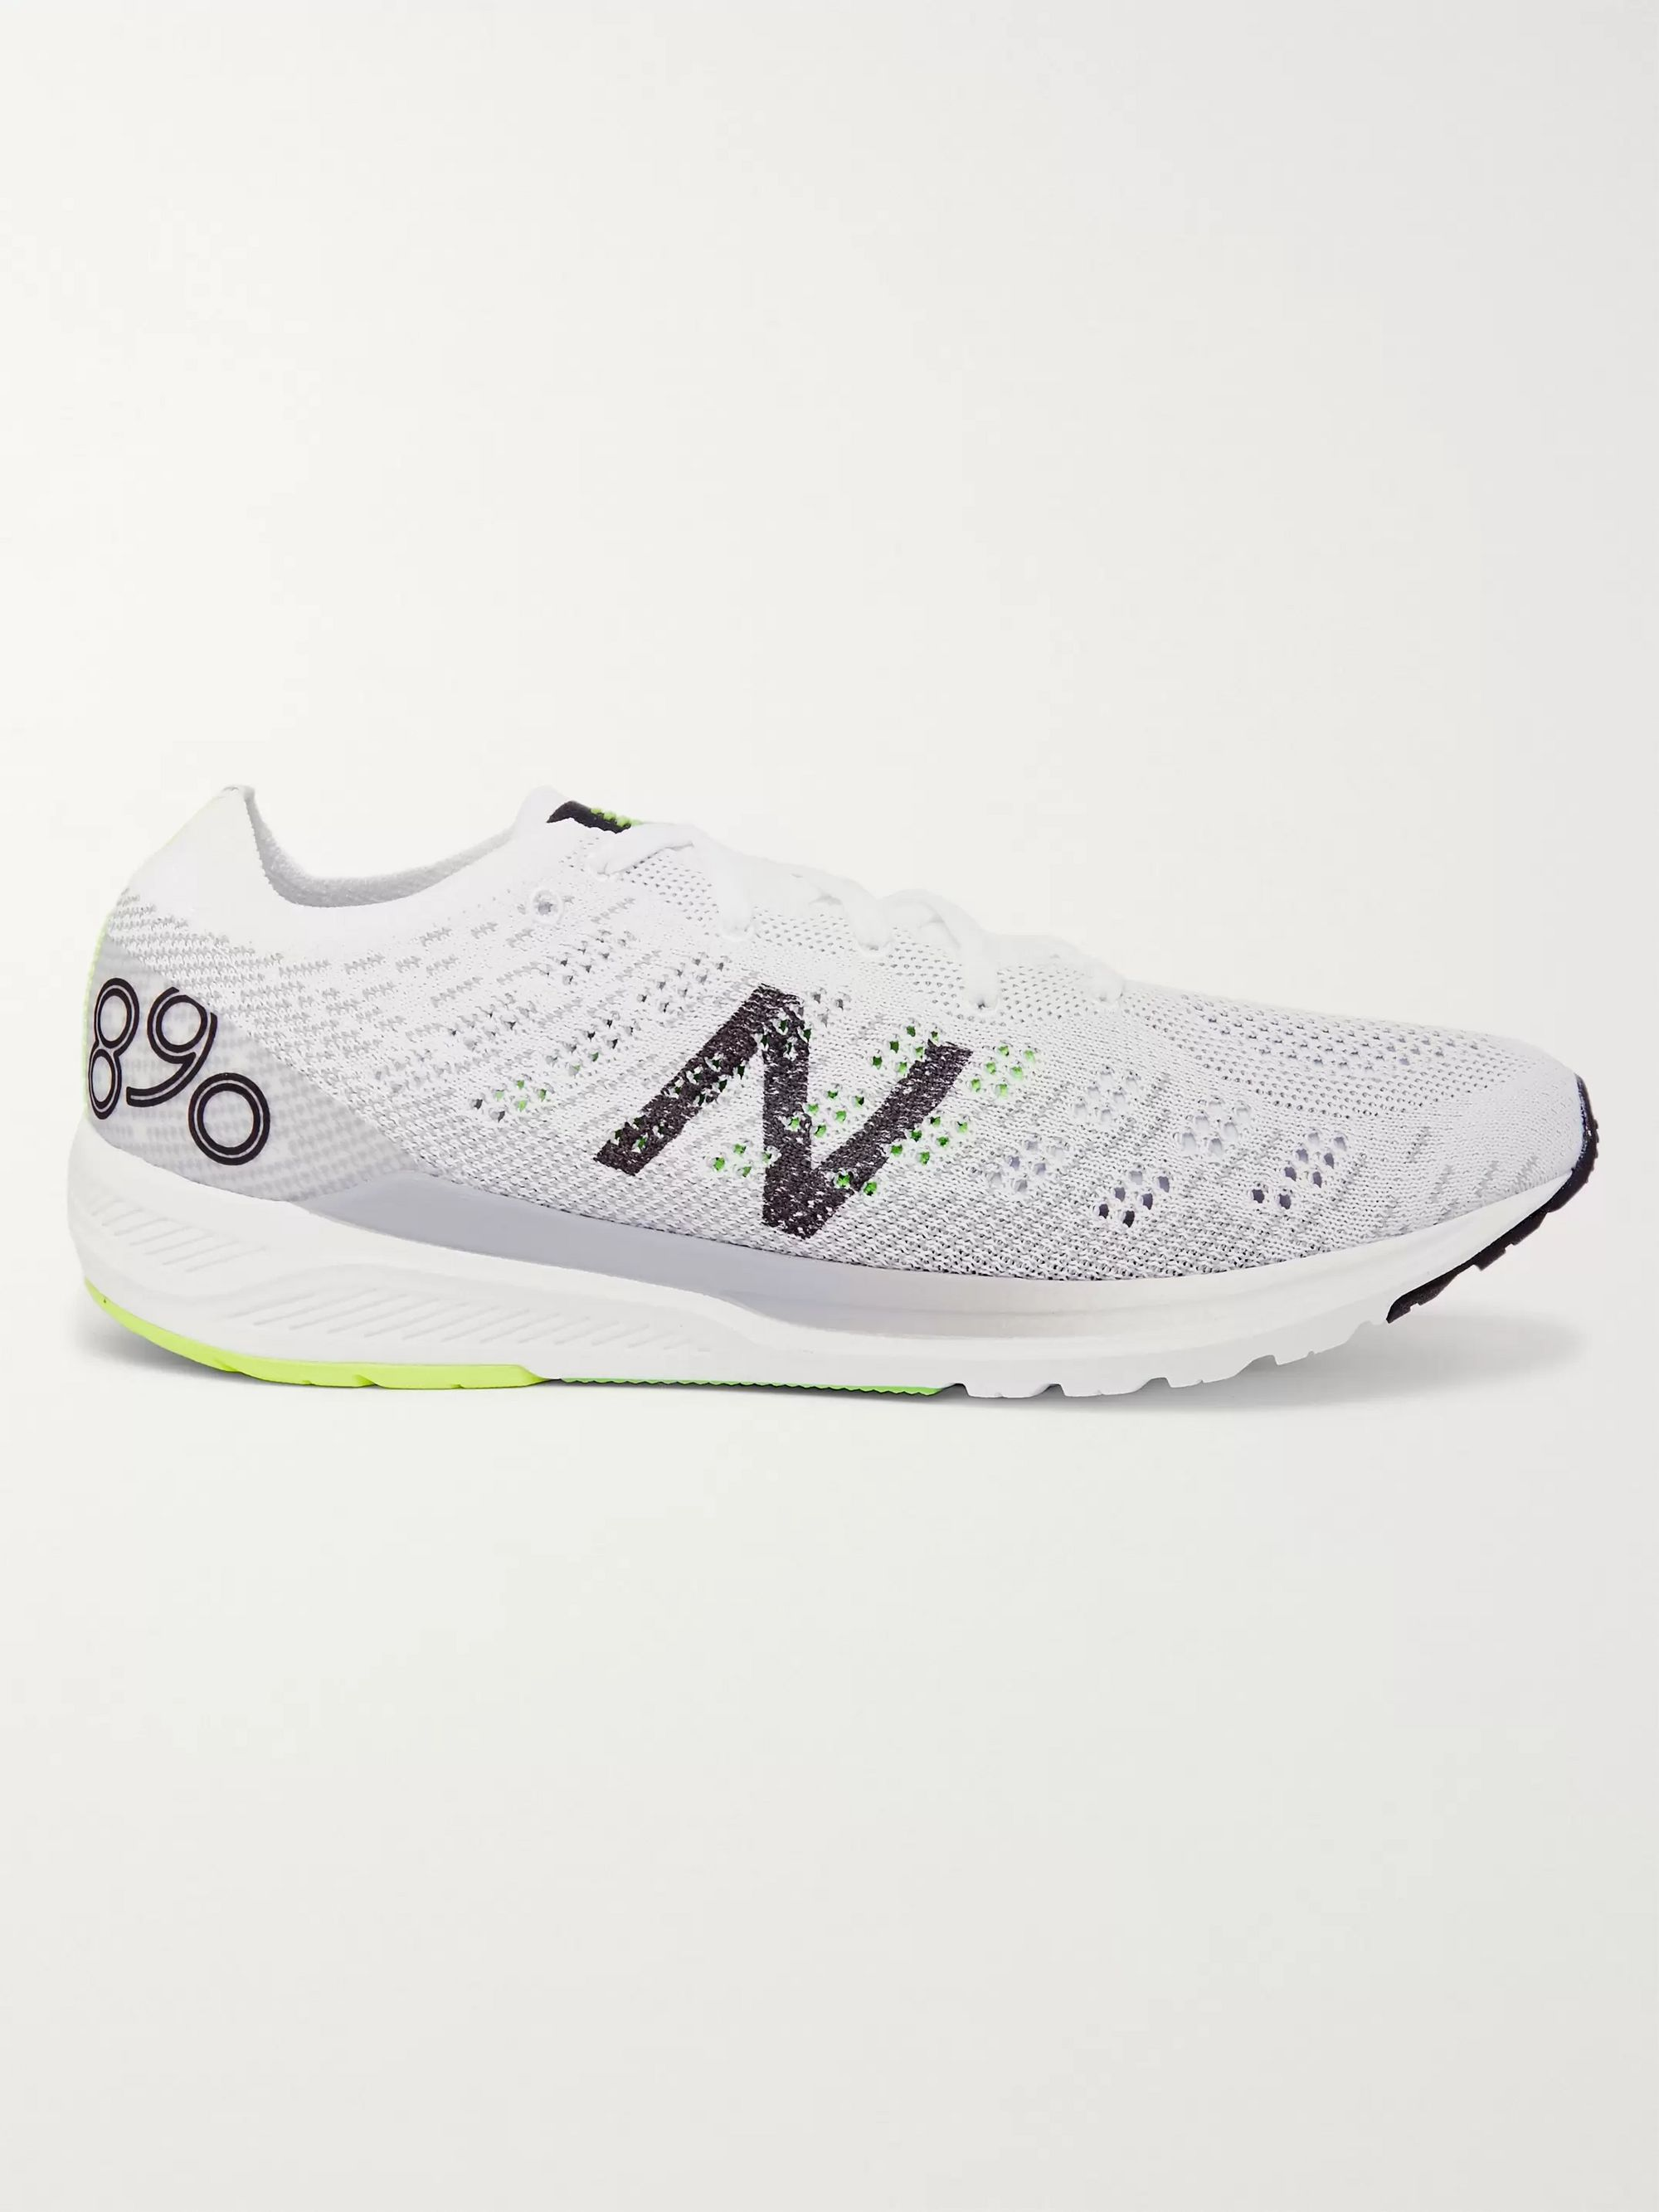 New Balance 890v7 Running Sneakers